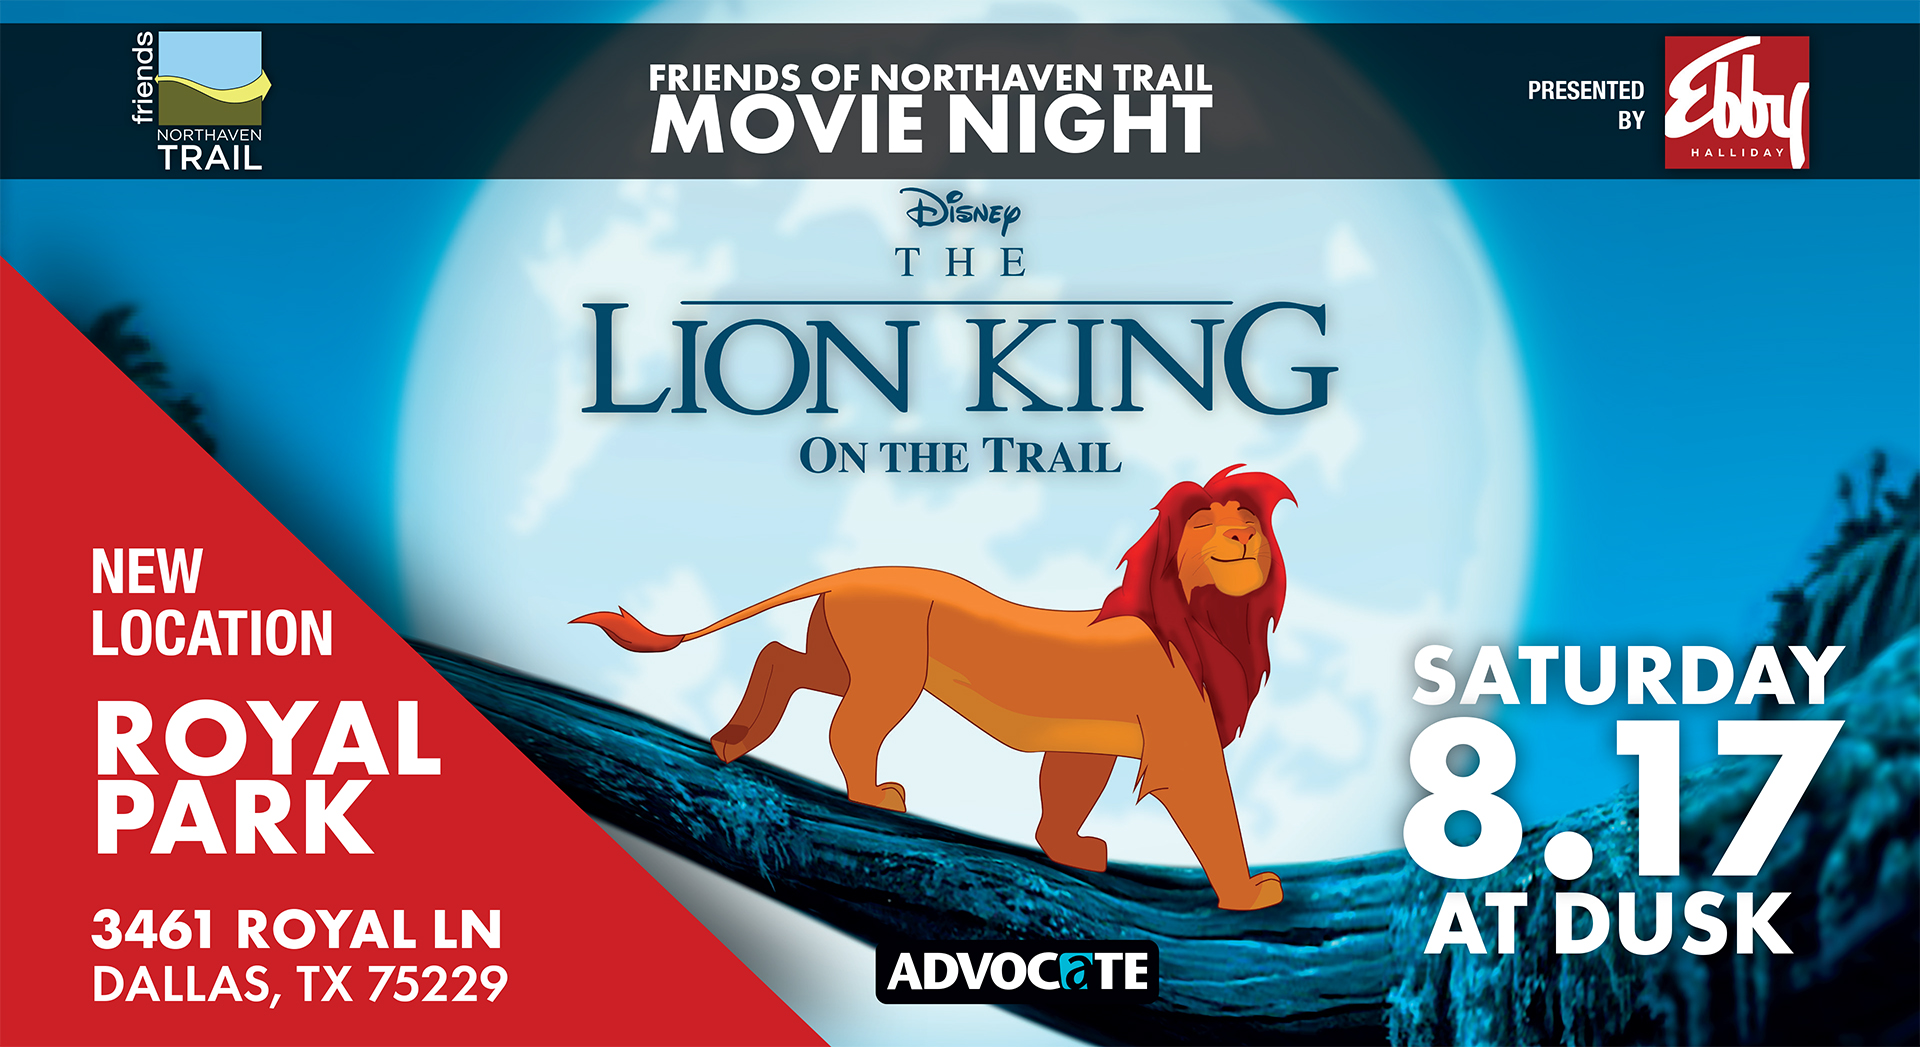 Join us for a Movie Night on the Trail presented by Ebby Halliday Realtors. We'll be screening Disney's The Lion King. Bring a picnic, insect spray and a blanket and enjoy the movie with your friends and family! We'll begin the movie at dusk.  Please take note of the new location- Royal Park which is at 3461 Royal Lane between Marsh and Webb Chapel.  Check out our  Facebook event page  for more details and a map to the new location.